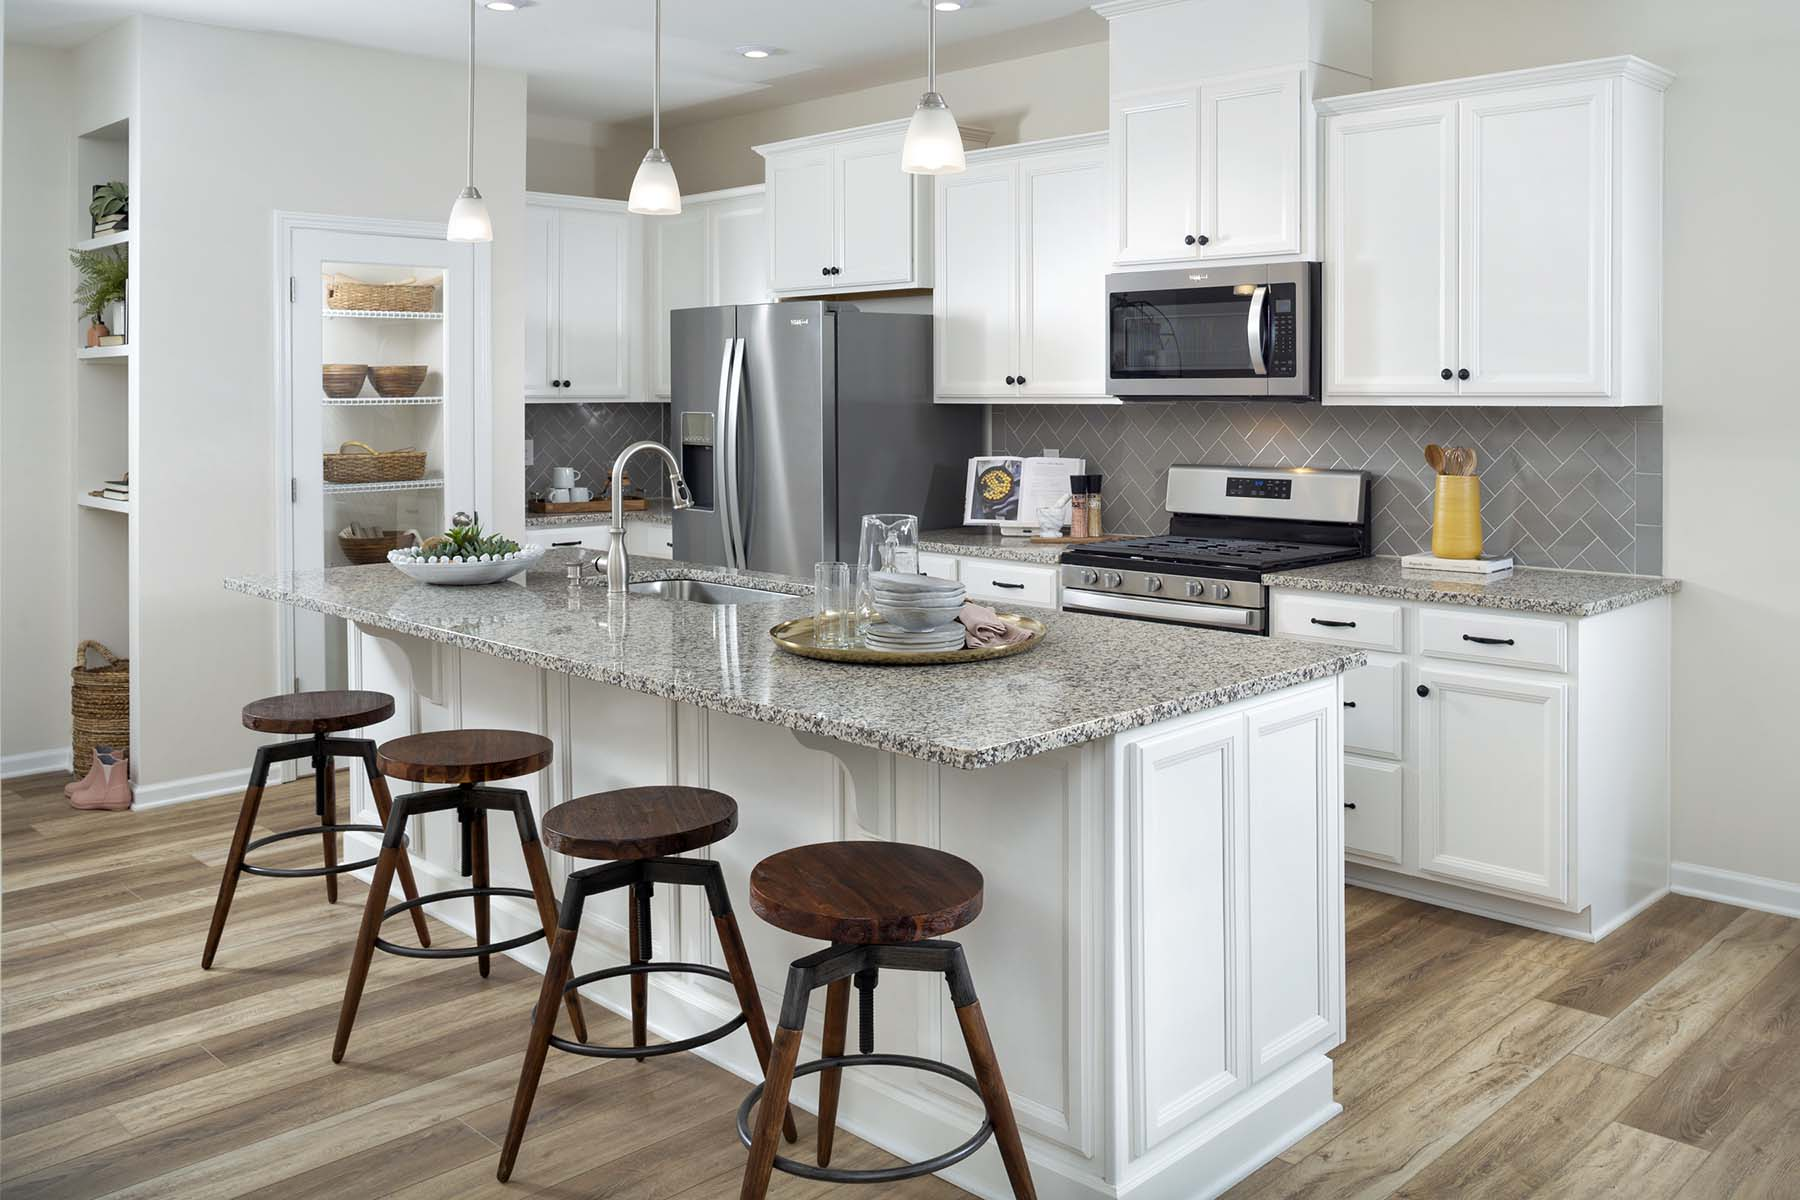 Ava Plan Kitchen at Galloway Park in Charlotte North Carolina by Mattamy Homes